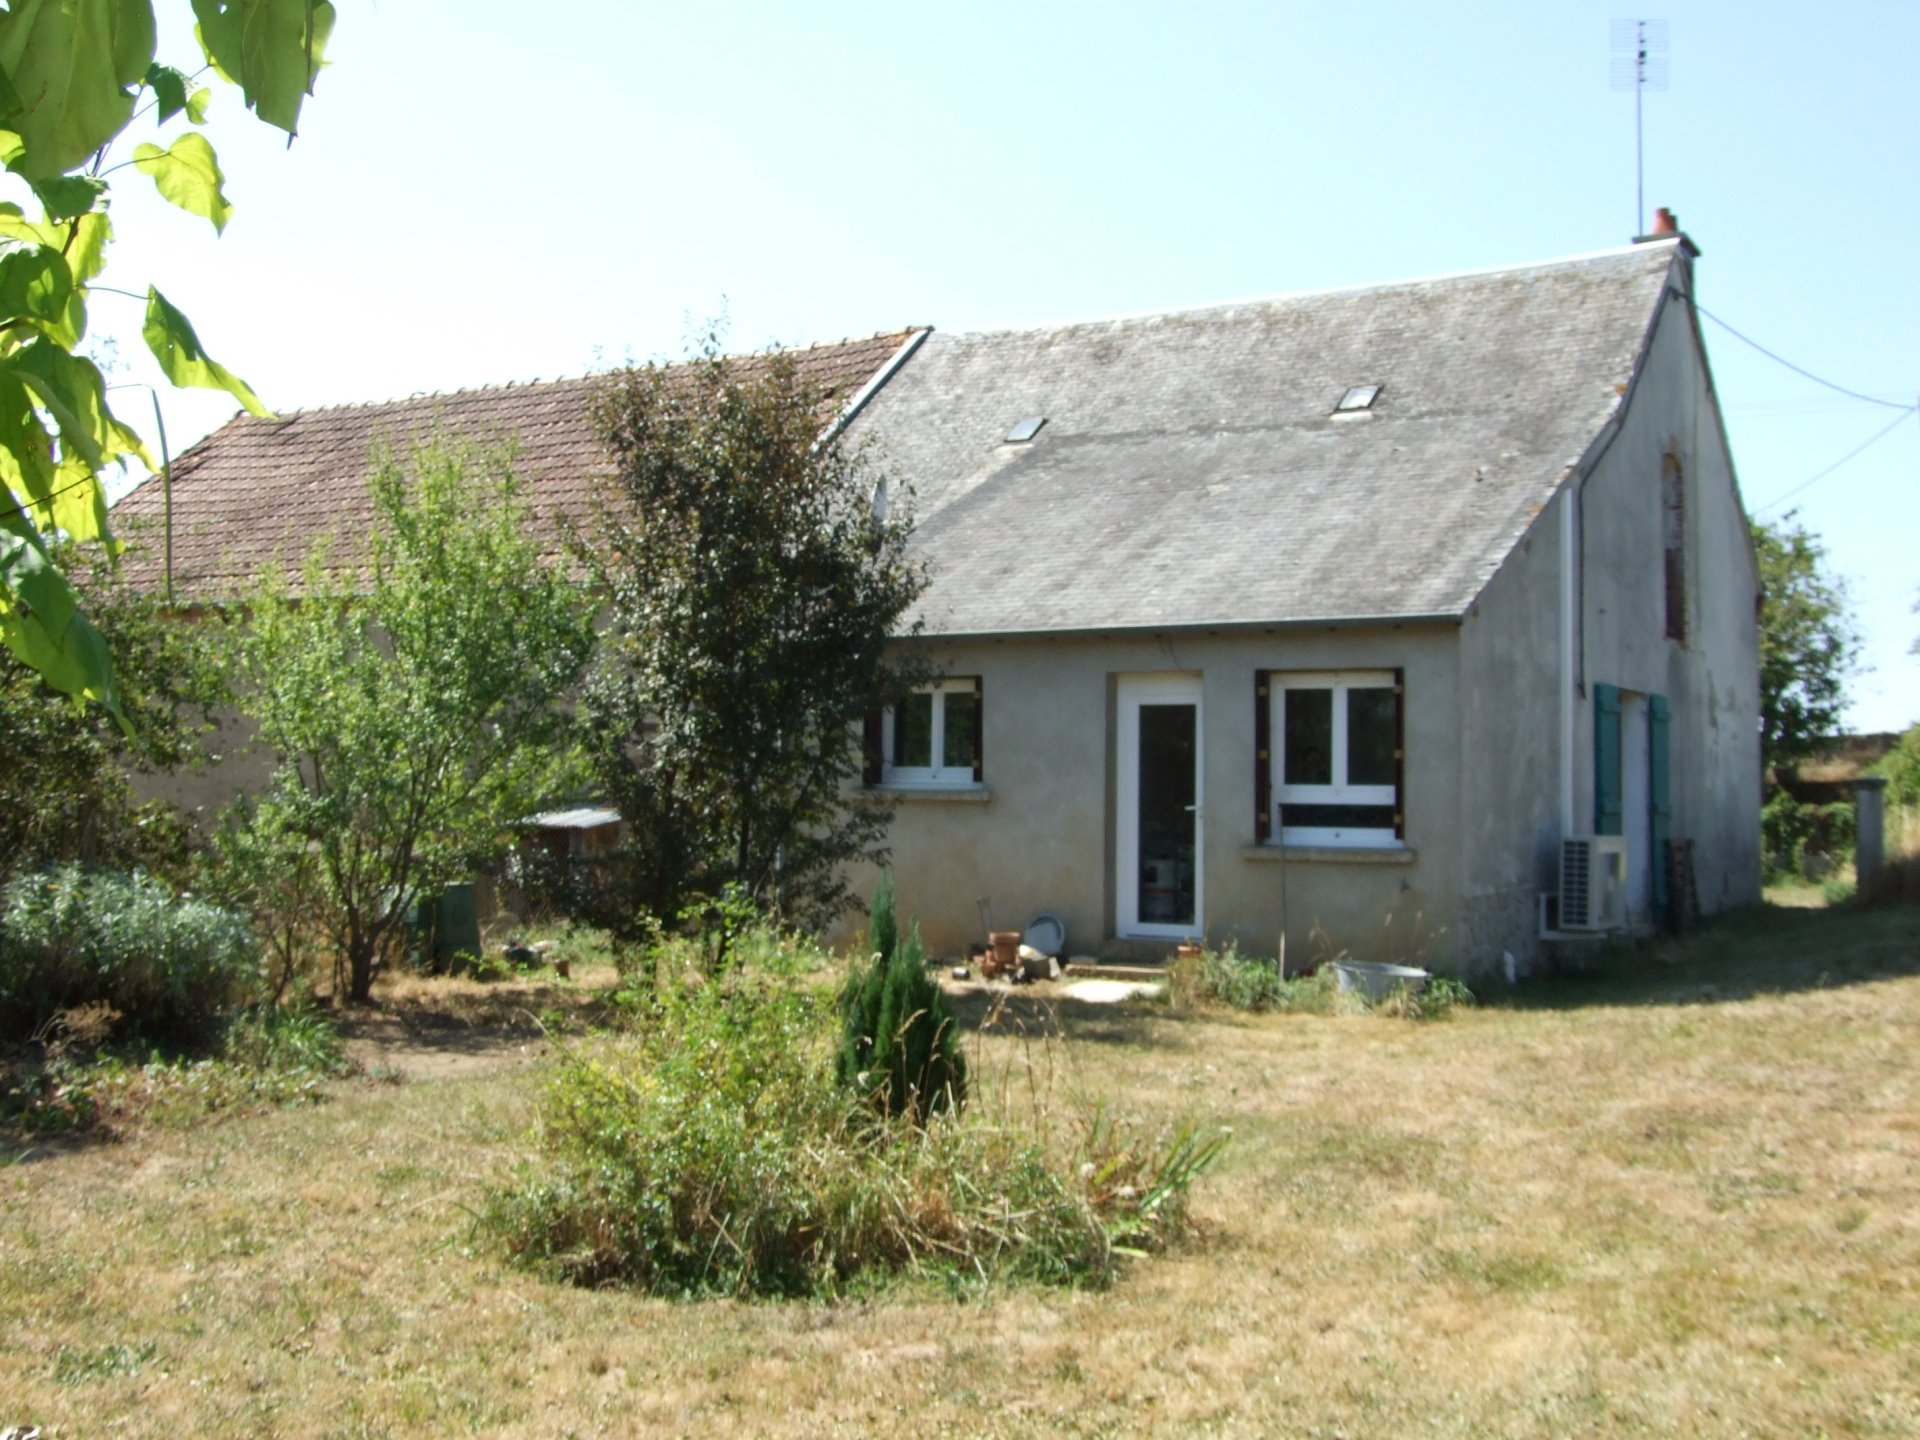 2 bedroom house with lots of land